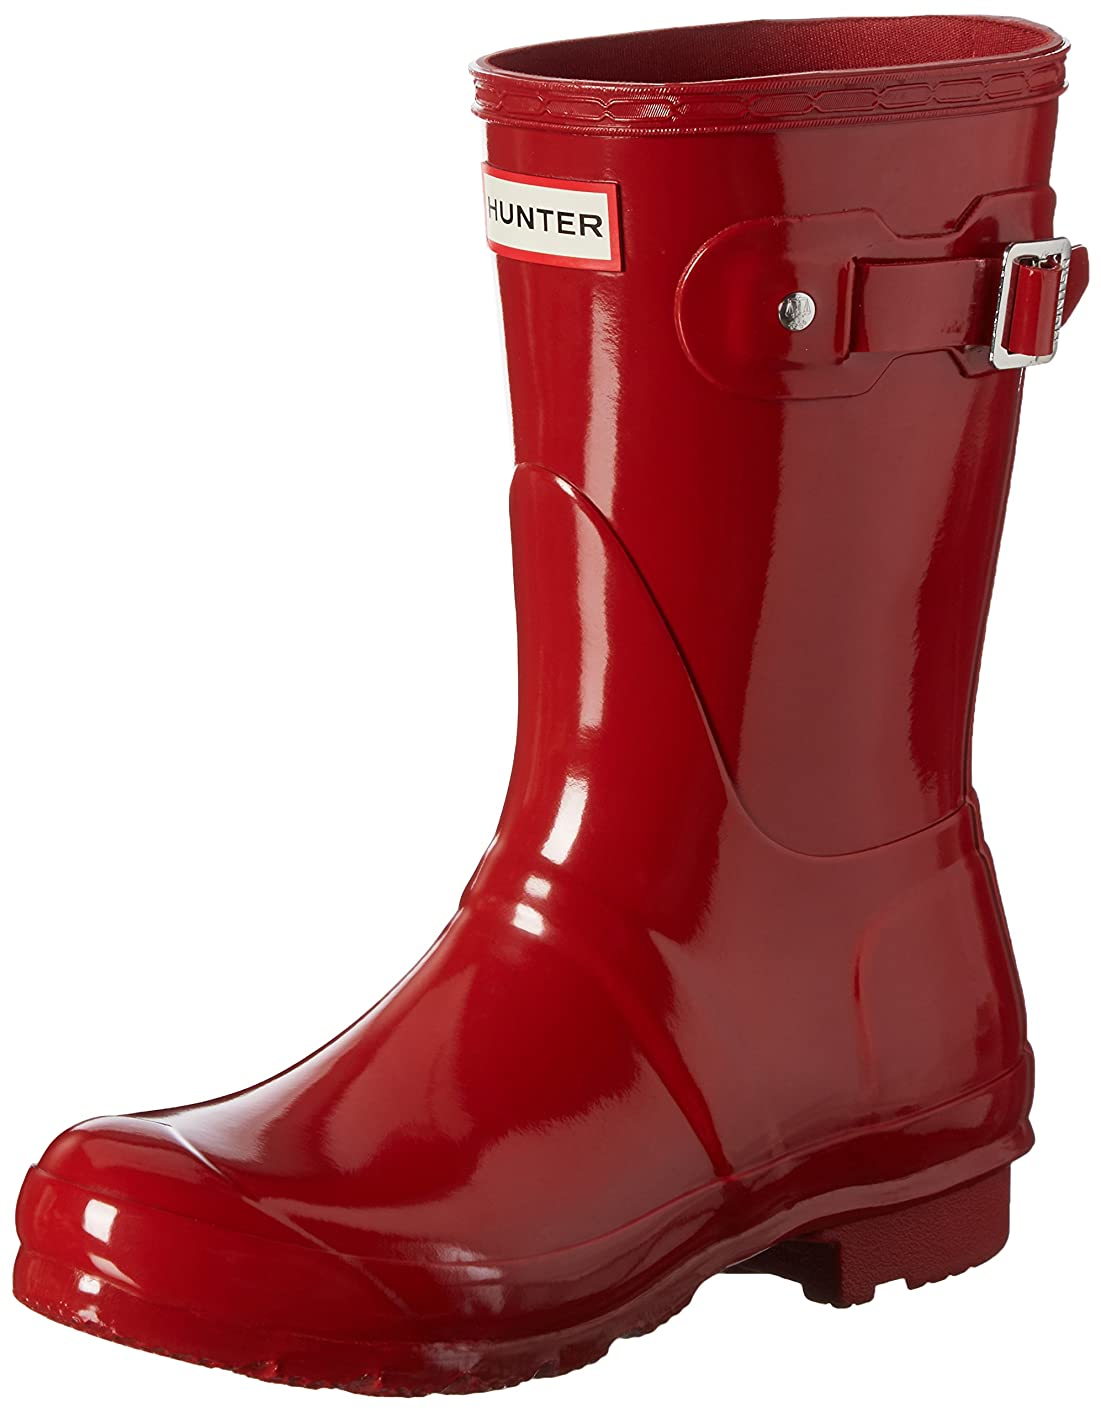 アレイスープ適合[ハンター] Women's Original Short Gloss Military Red Mid-Calf Rubber Rain Boot - 10M